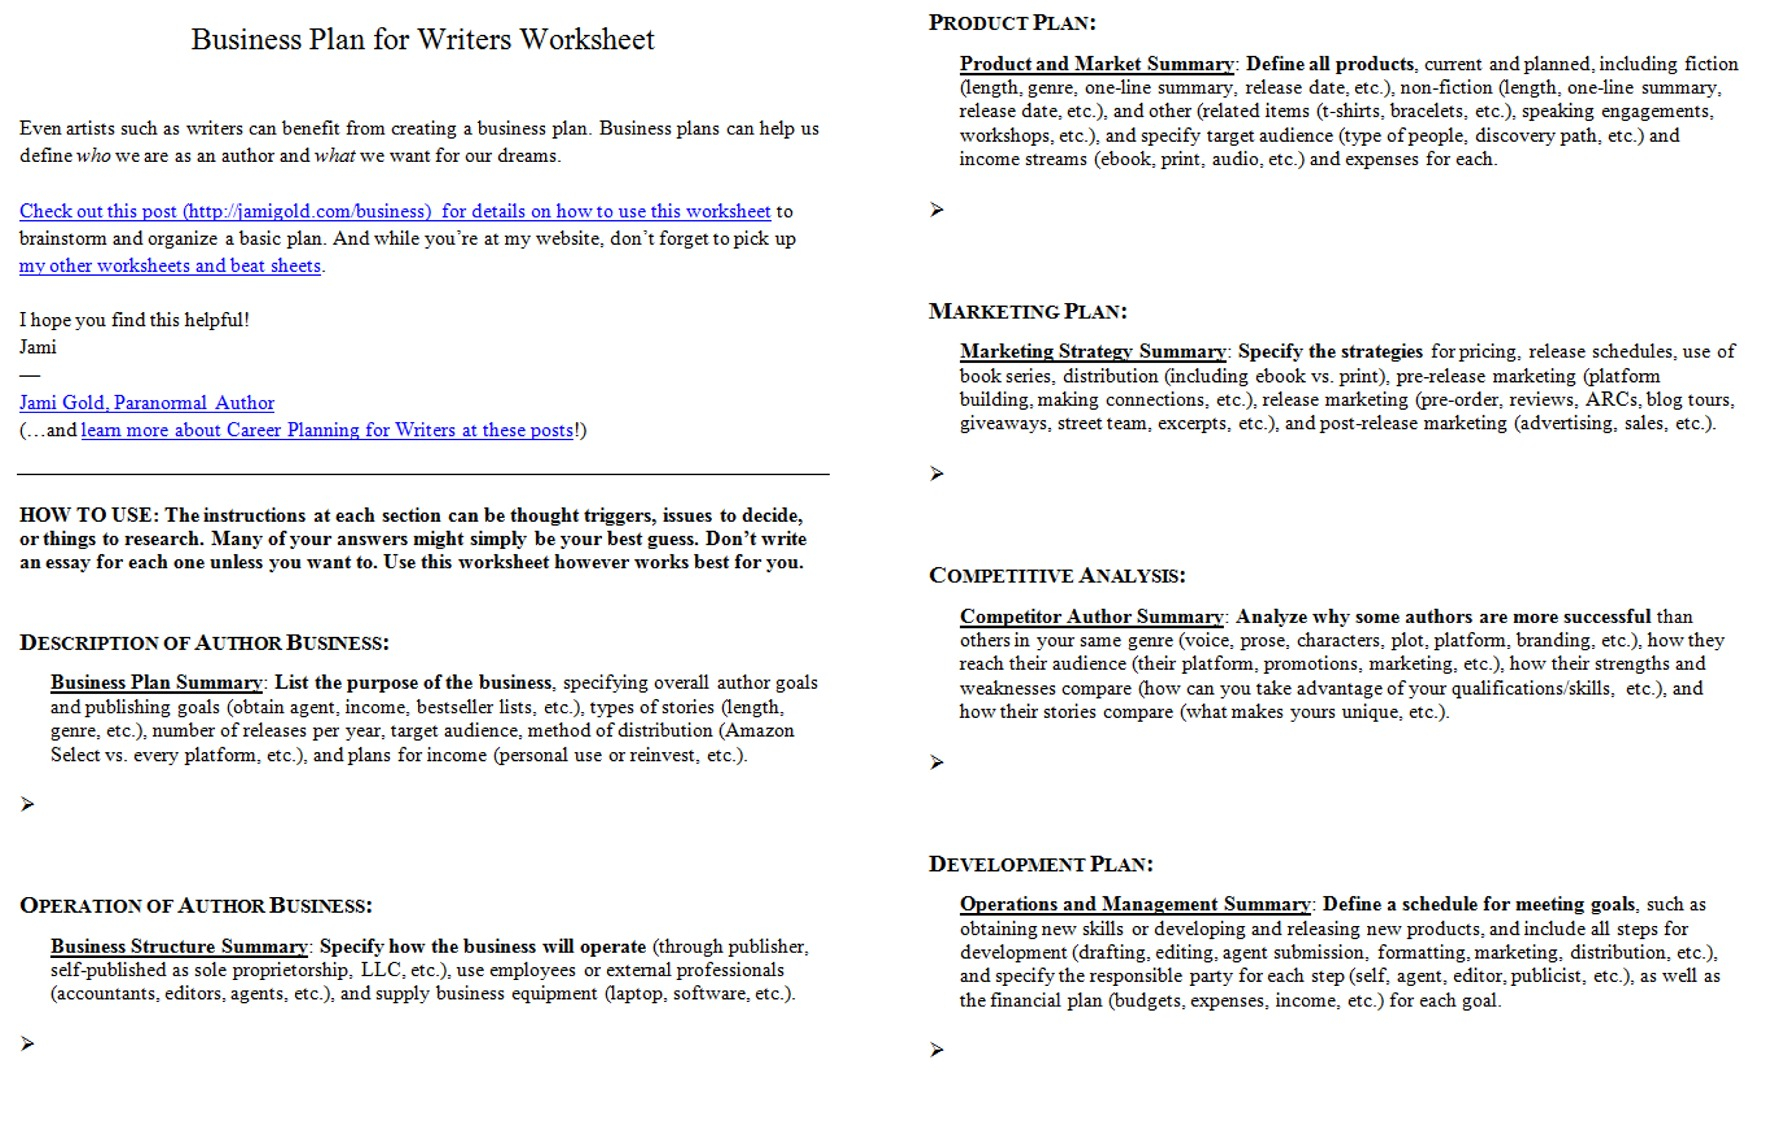 Proatmealus  Nice Worksheets For Writers  Jami Gold Paranormal Author With Likable Screen Shot Of Both Pages Of The Business Plan For Writers Worksheet With Archaic Learning English For Adults Worksheets Also Time Management Worksheets For Students In Addition Holes By Louis Sachar Activities Worksheets And Reflexive Pronoun Worksheets For Grade  As Well As Ks Science Worksheets Additionally Worksheet On Forces And Motion From Jamigoldcom With Proatmealus  Likable Worksheets For Writers  Jami Gold Paranormal Author With Archaic Screen Shot Of Both Pages Of The Business Plan For Writers Worksheet And Nice Learning English For Adults Worksheets Also Time Management Worksheets For Students In Addition Holes By Louis Sachar Activities Worksheets From Jamigoldcom